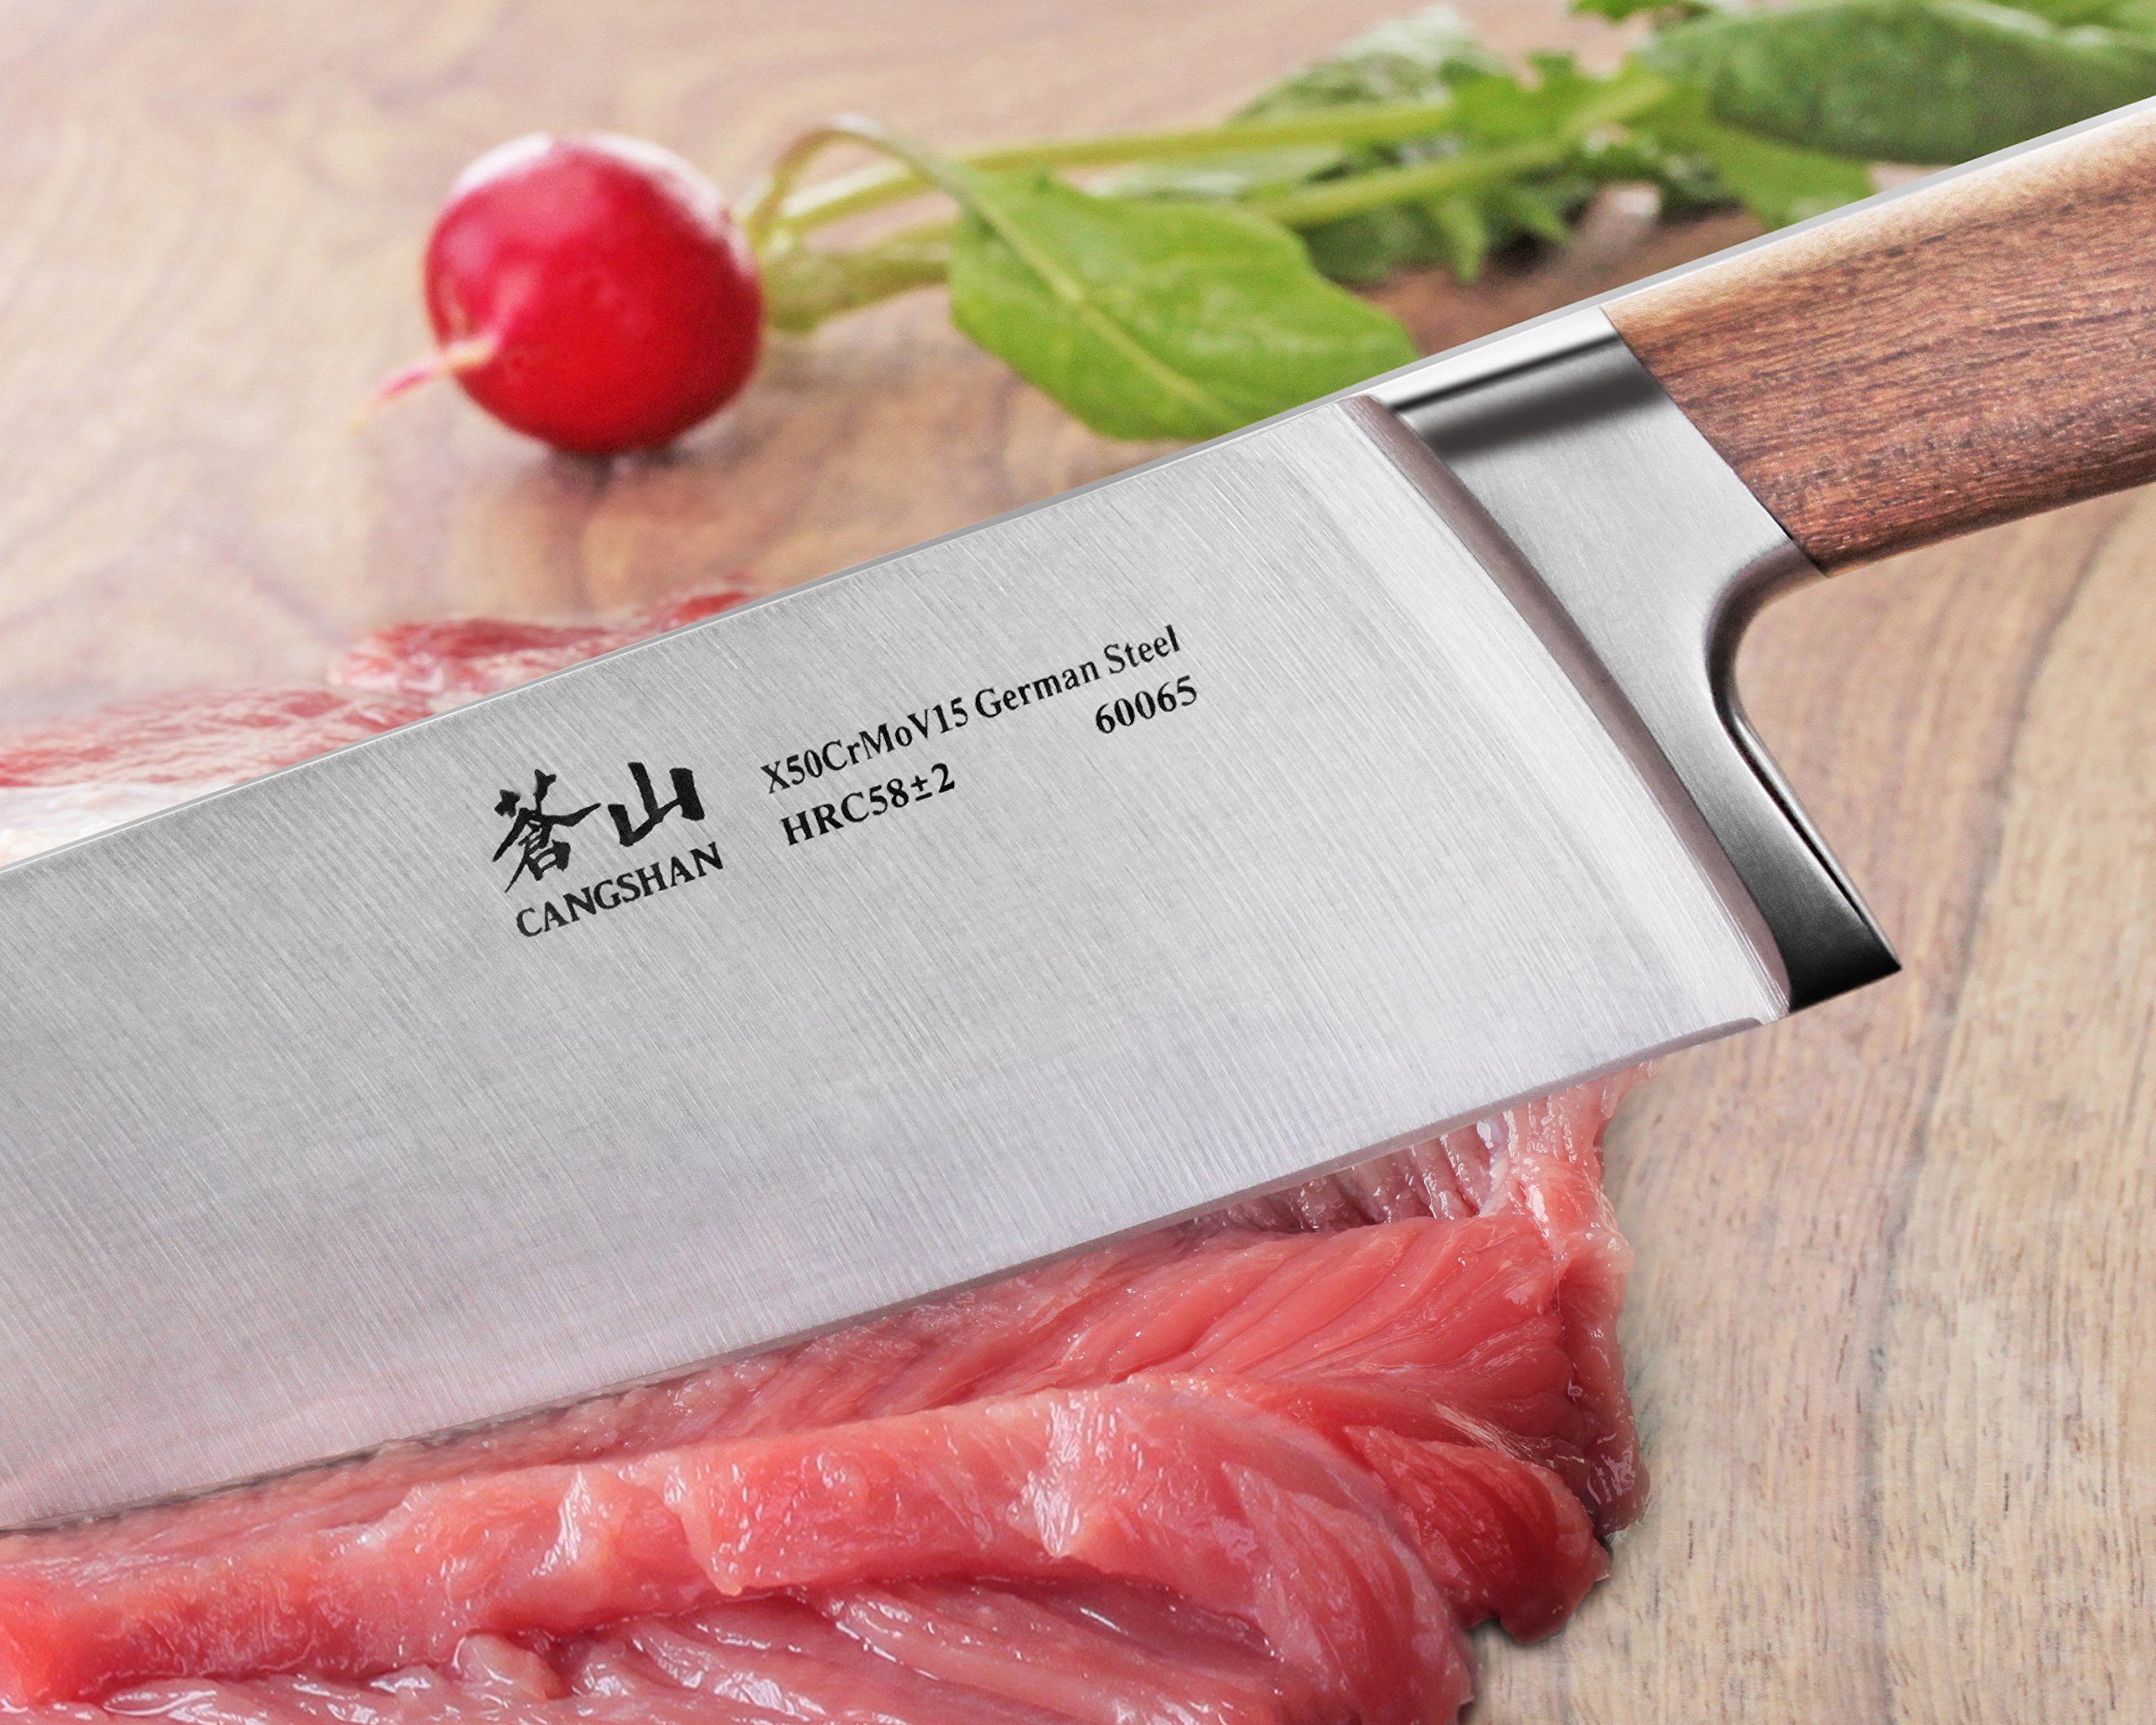 Cangshan H1 Series 60065 German Steel Forged Chef Knife, 8'', Silver by Cangshan (Image #5)